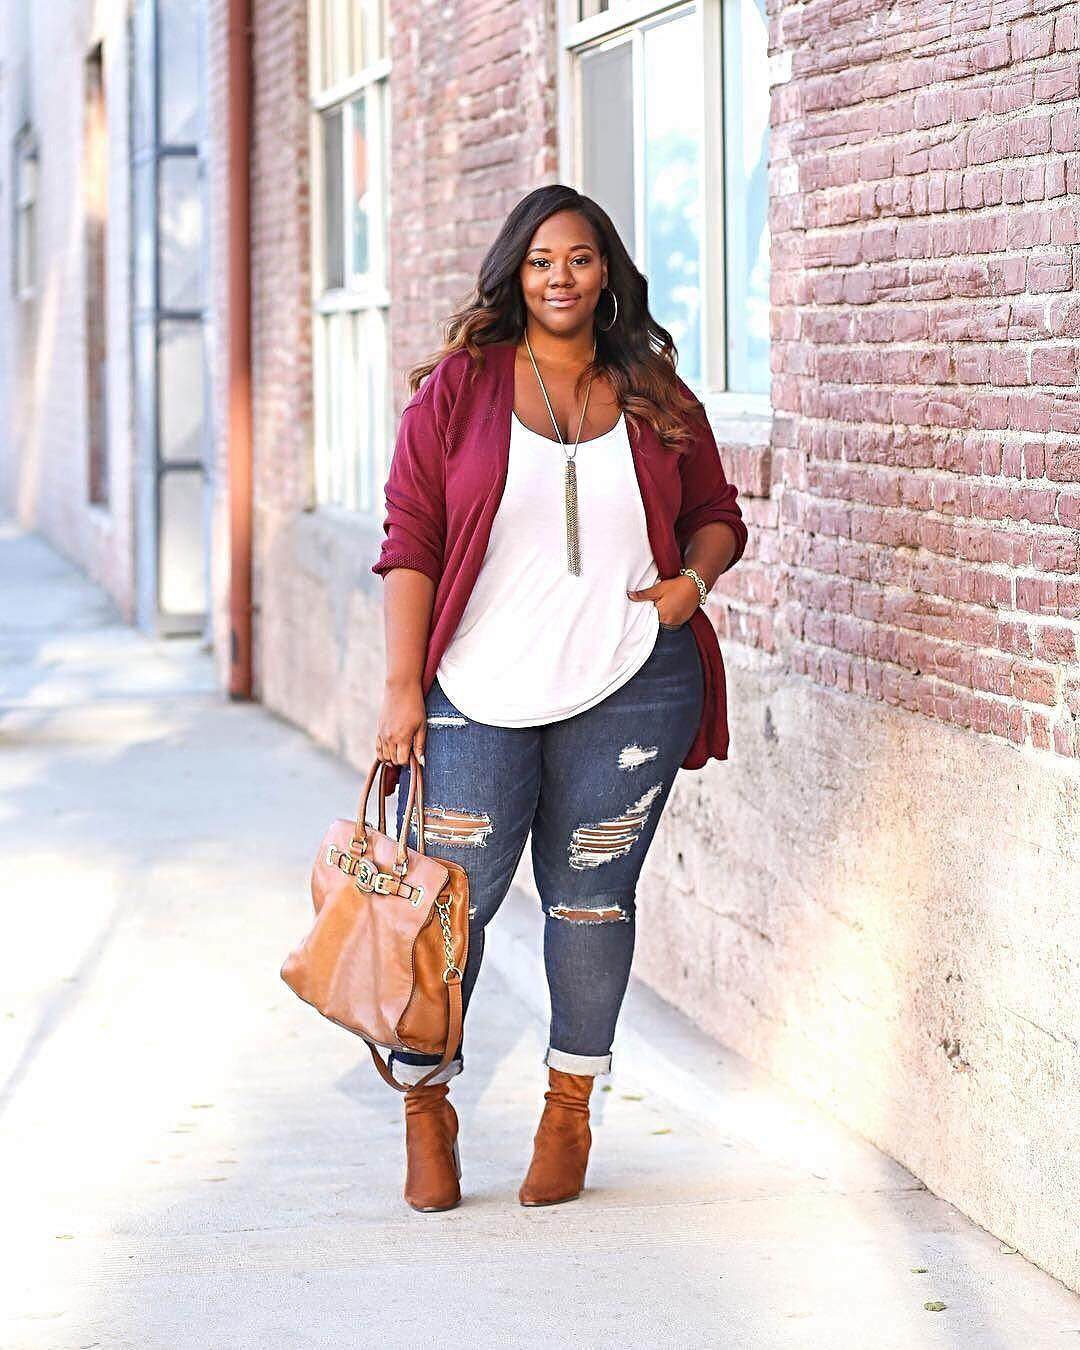 13d1a3a0862 You can get one box or keep going without a commitment. The Stitch Fix  styling fee is  20. Buy all five pieces for 25% discount off the entire  purchase.